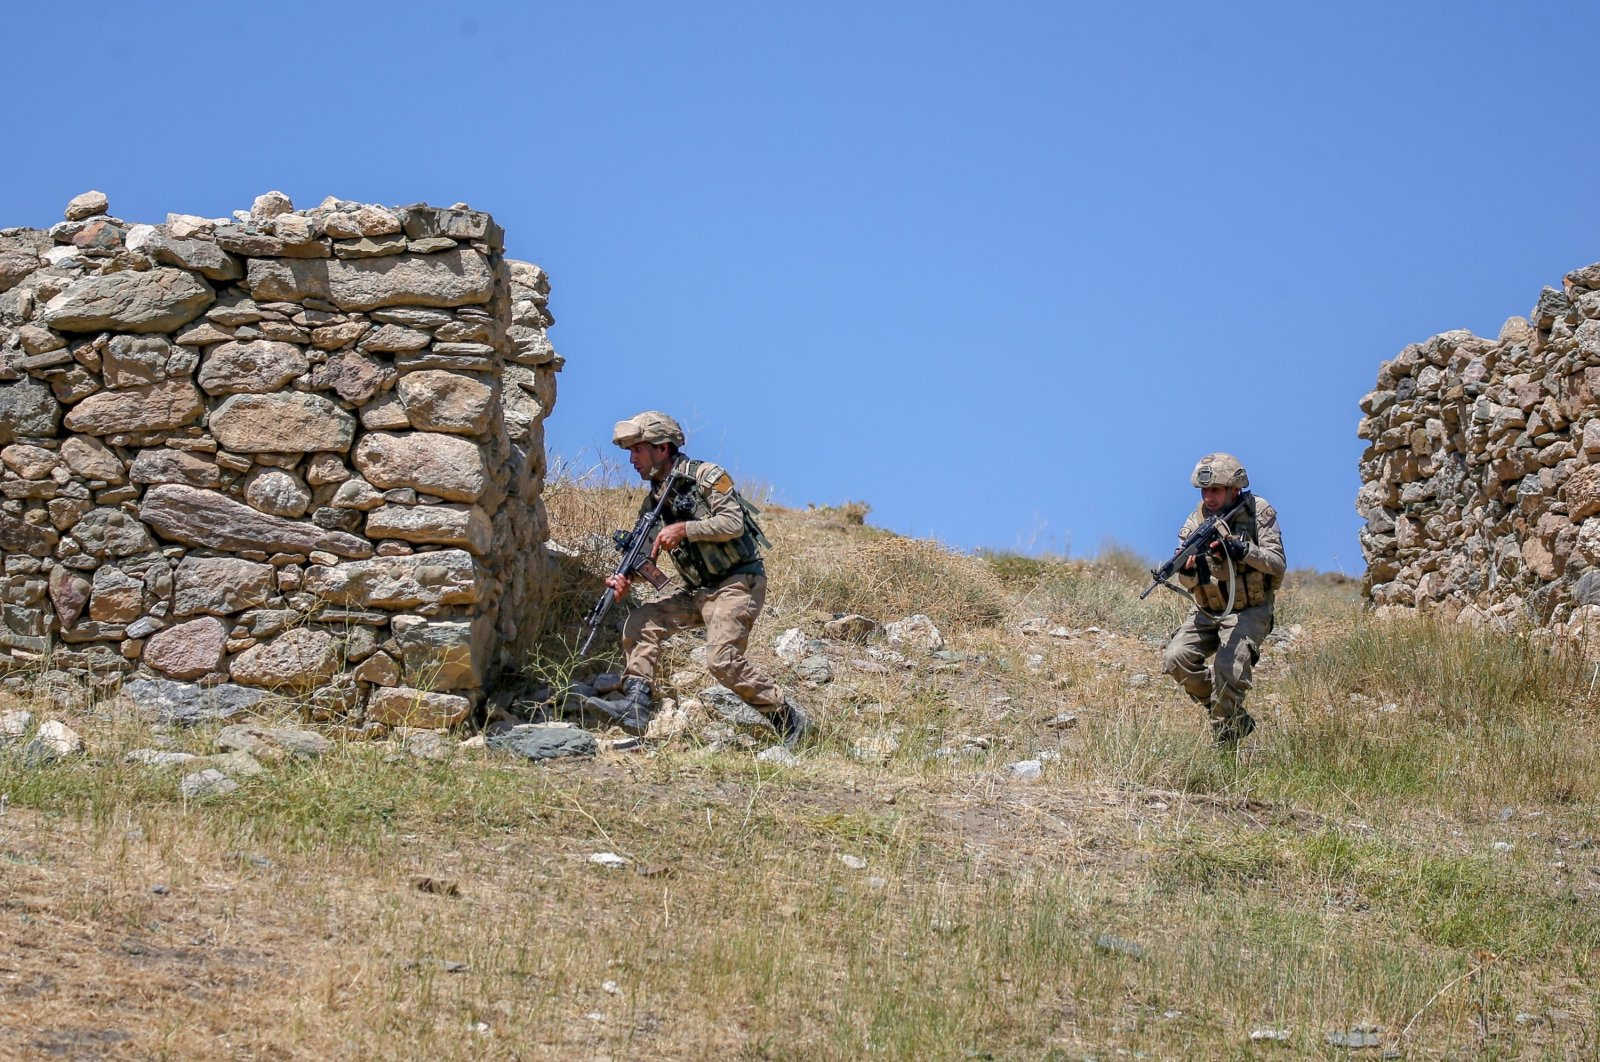 Turkish security forces participate in a counterterrorism operation in southeast Turkey in this undated photo. (File Photo)